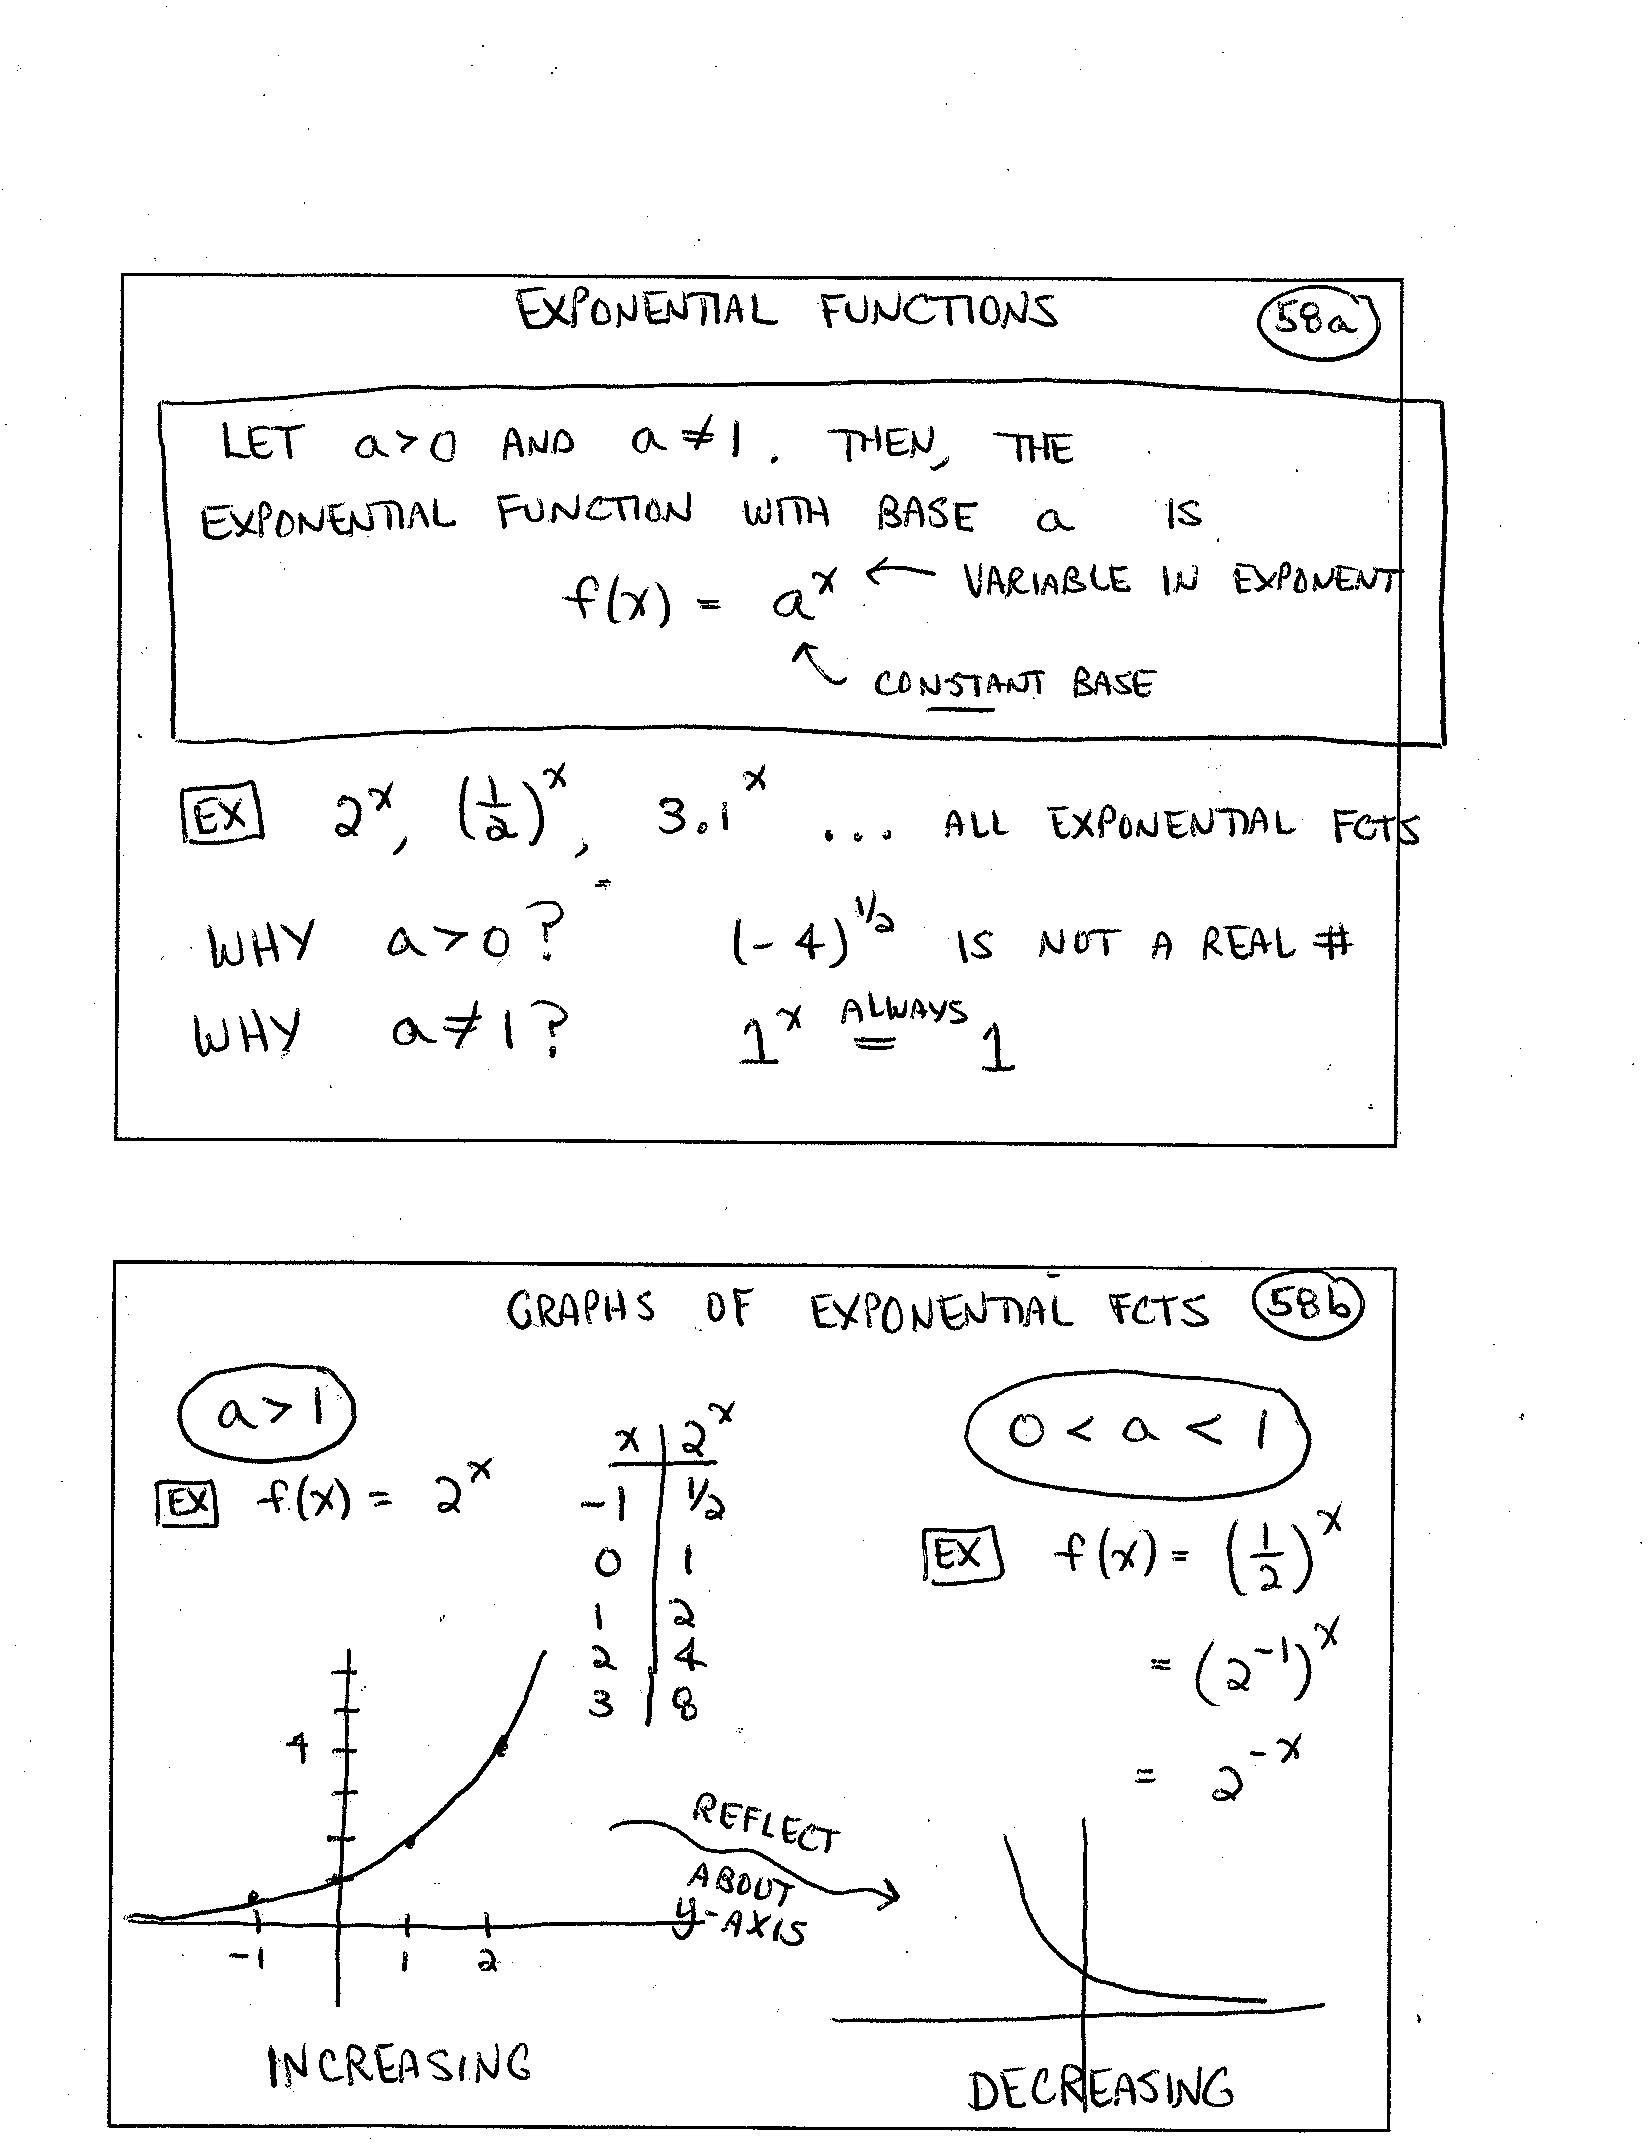 30 Exponential Function Word Problems Worksheet